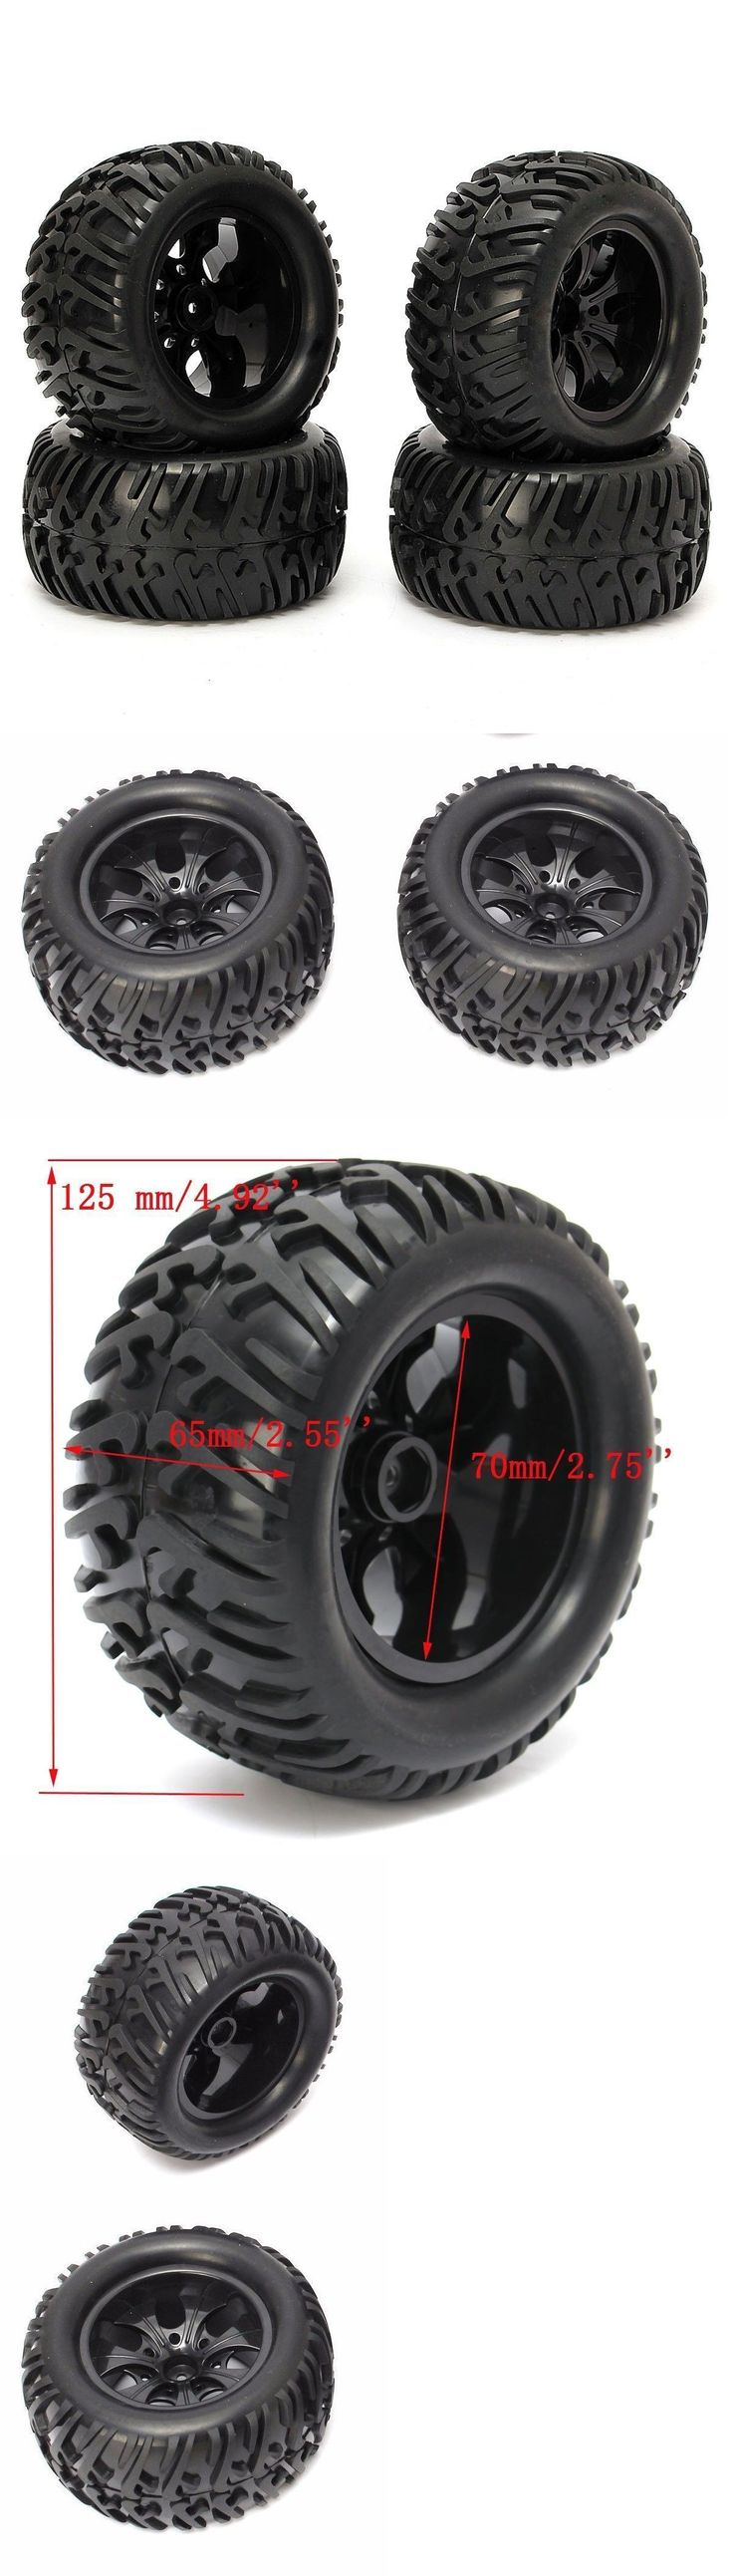 Wheels Tires Rims and Hubs 182201: 4Pcs Wheel Rim And Tires Hsp 110 Monster Truck Off Road Rc Car 12Mm Hub 88005 -> BUY IT NOW ONLY: $119.9 on eBay!